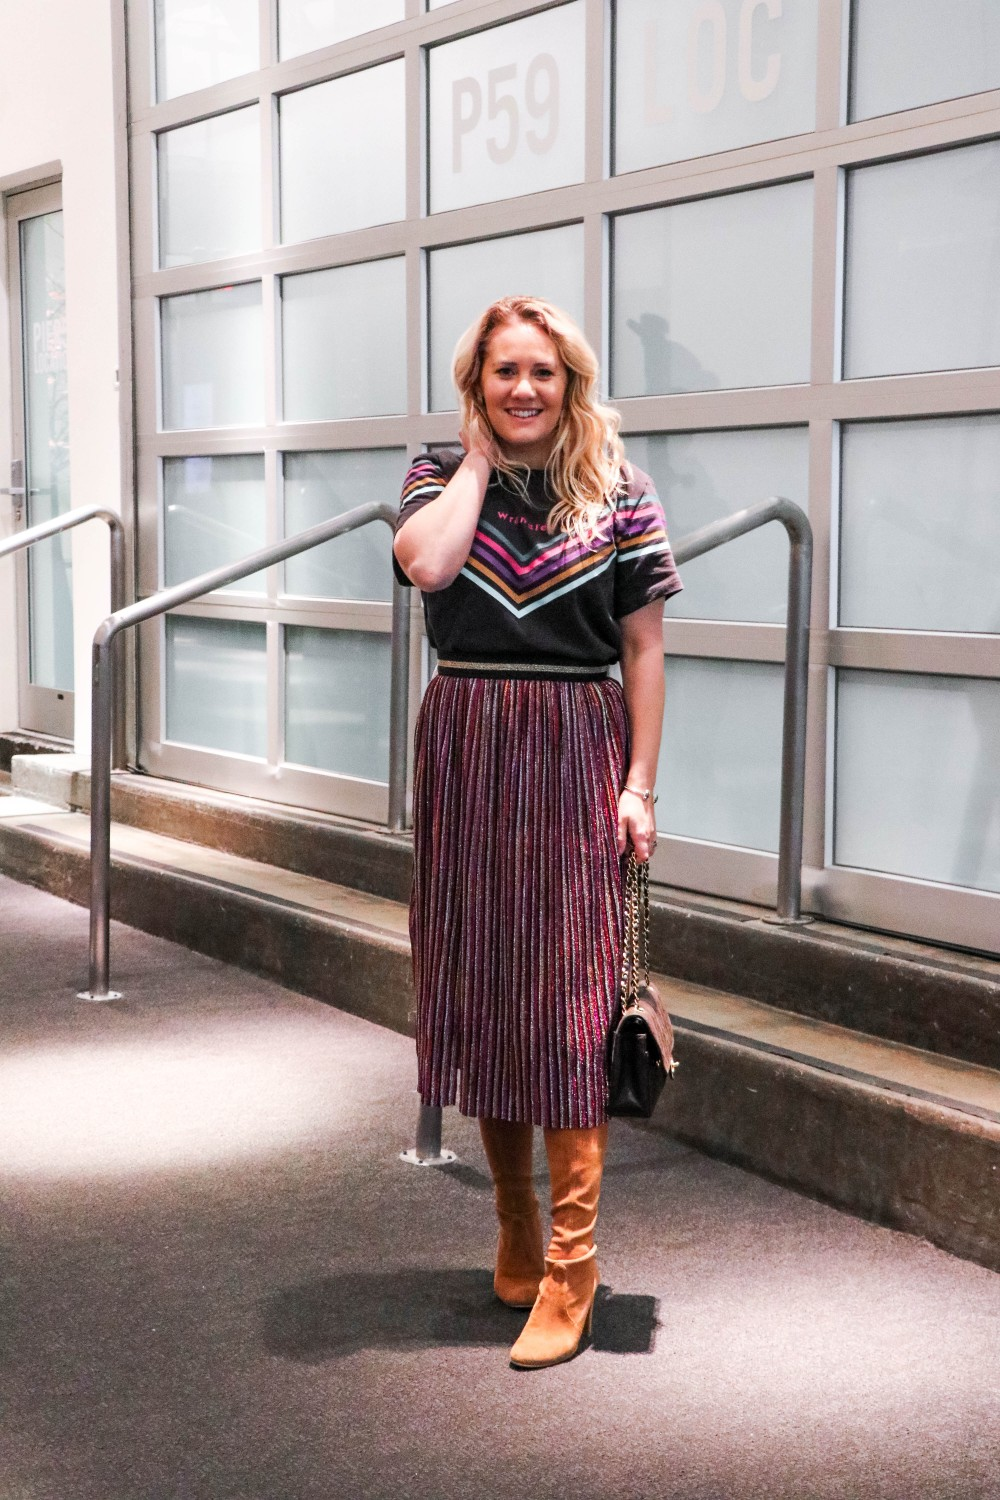 Day Three of NYFW I Wore This Vintage Inspired Wrangler Tee and Multi-Metallic Skirt From Topshop! Click on the photo to check out the full post on Have Need Want! #NYFW #NYFWstreetstyle #Wrangler #Topshop #OutfitInspiration